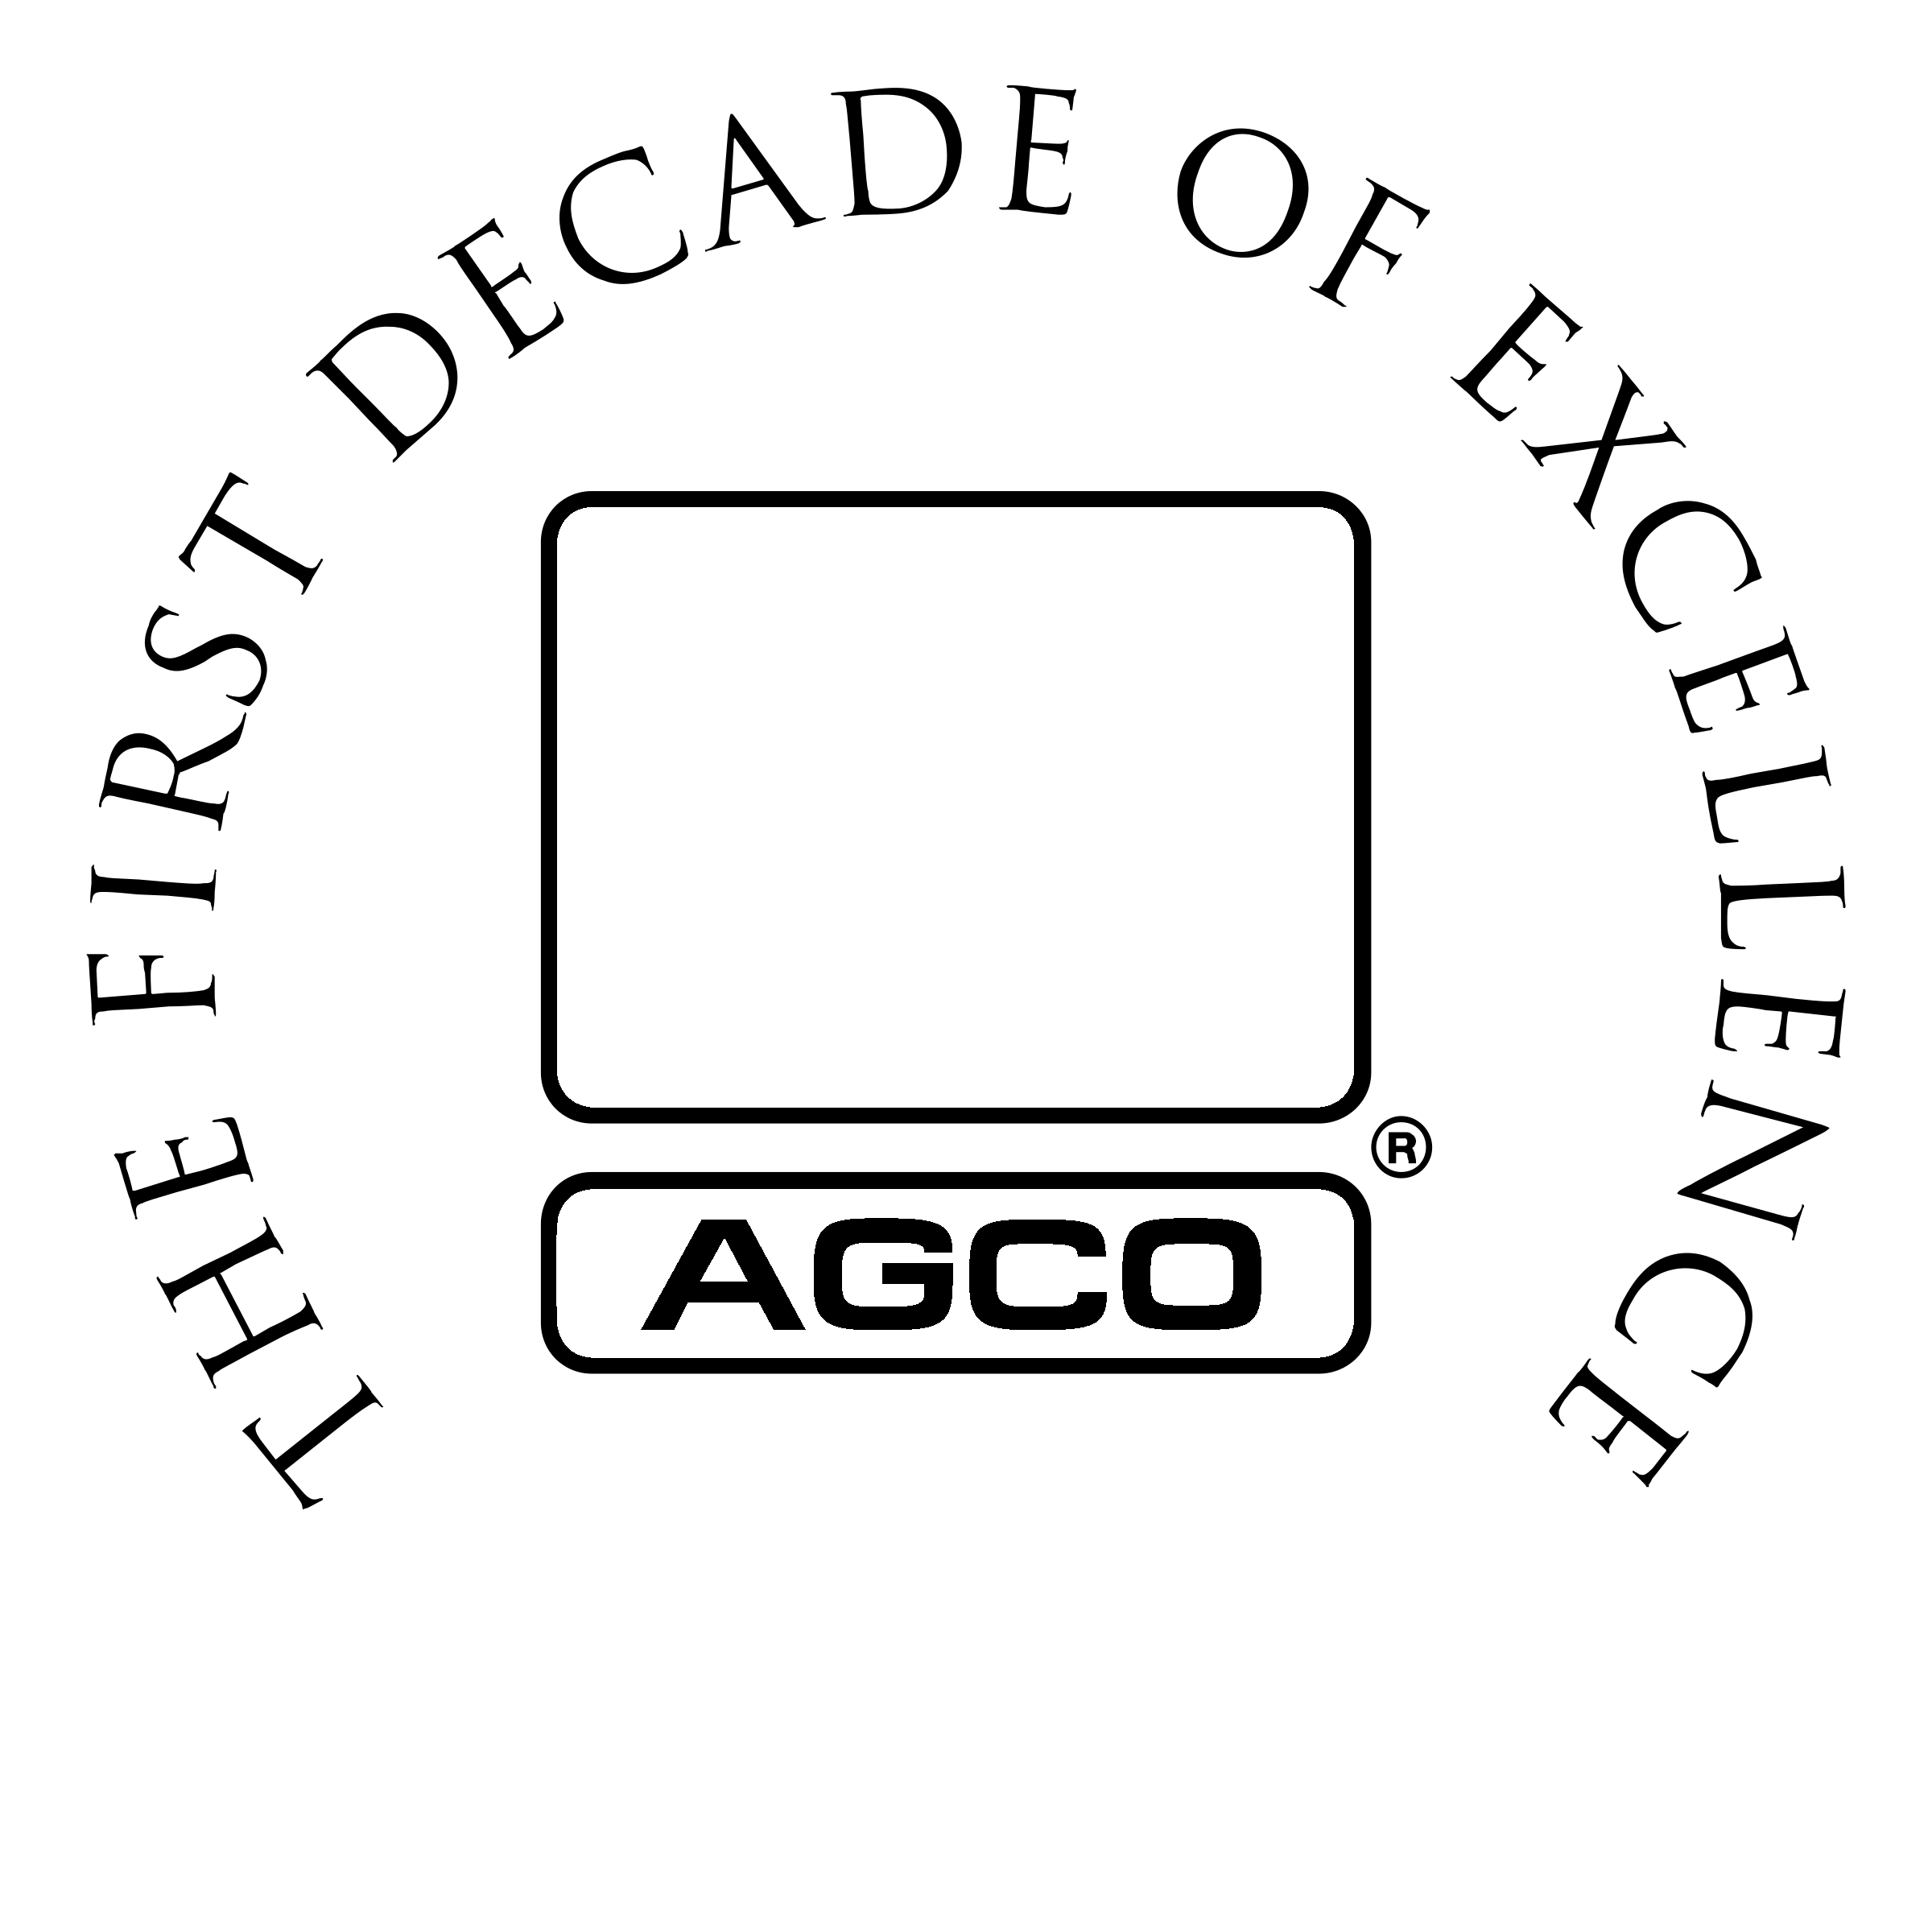 AGCO Logo PNG Transparent & SVG Vector.